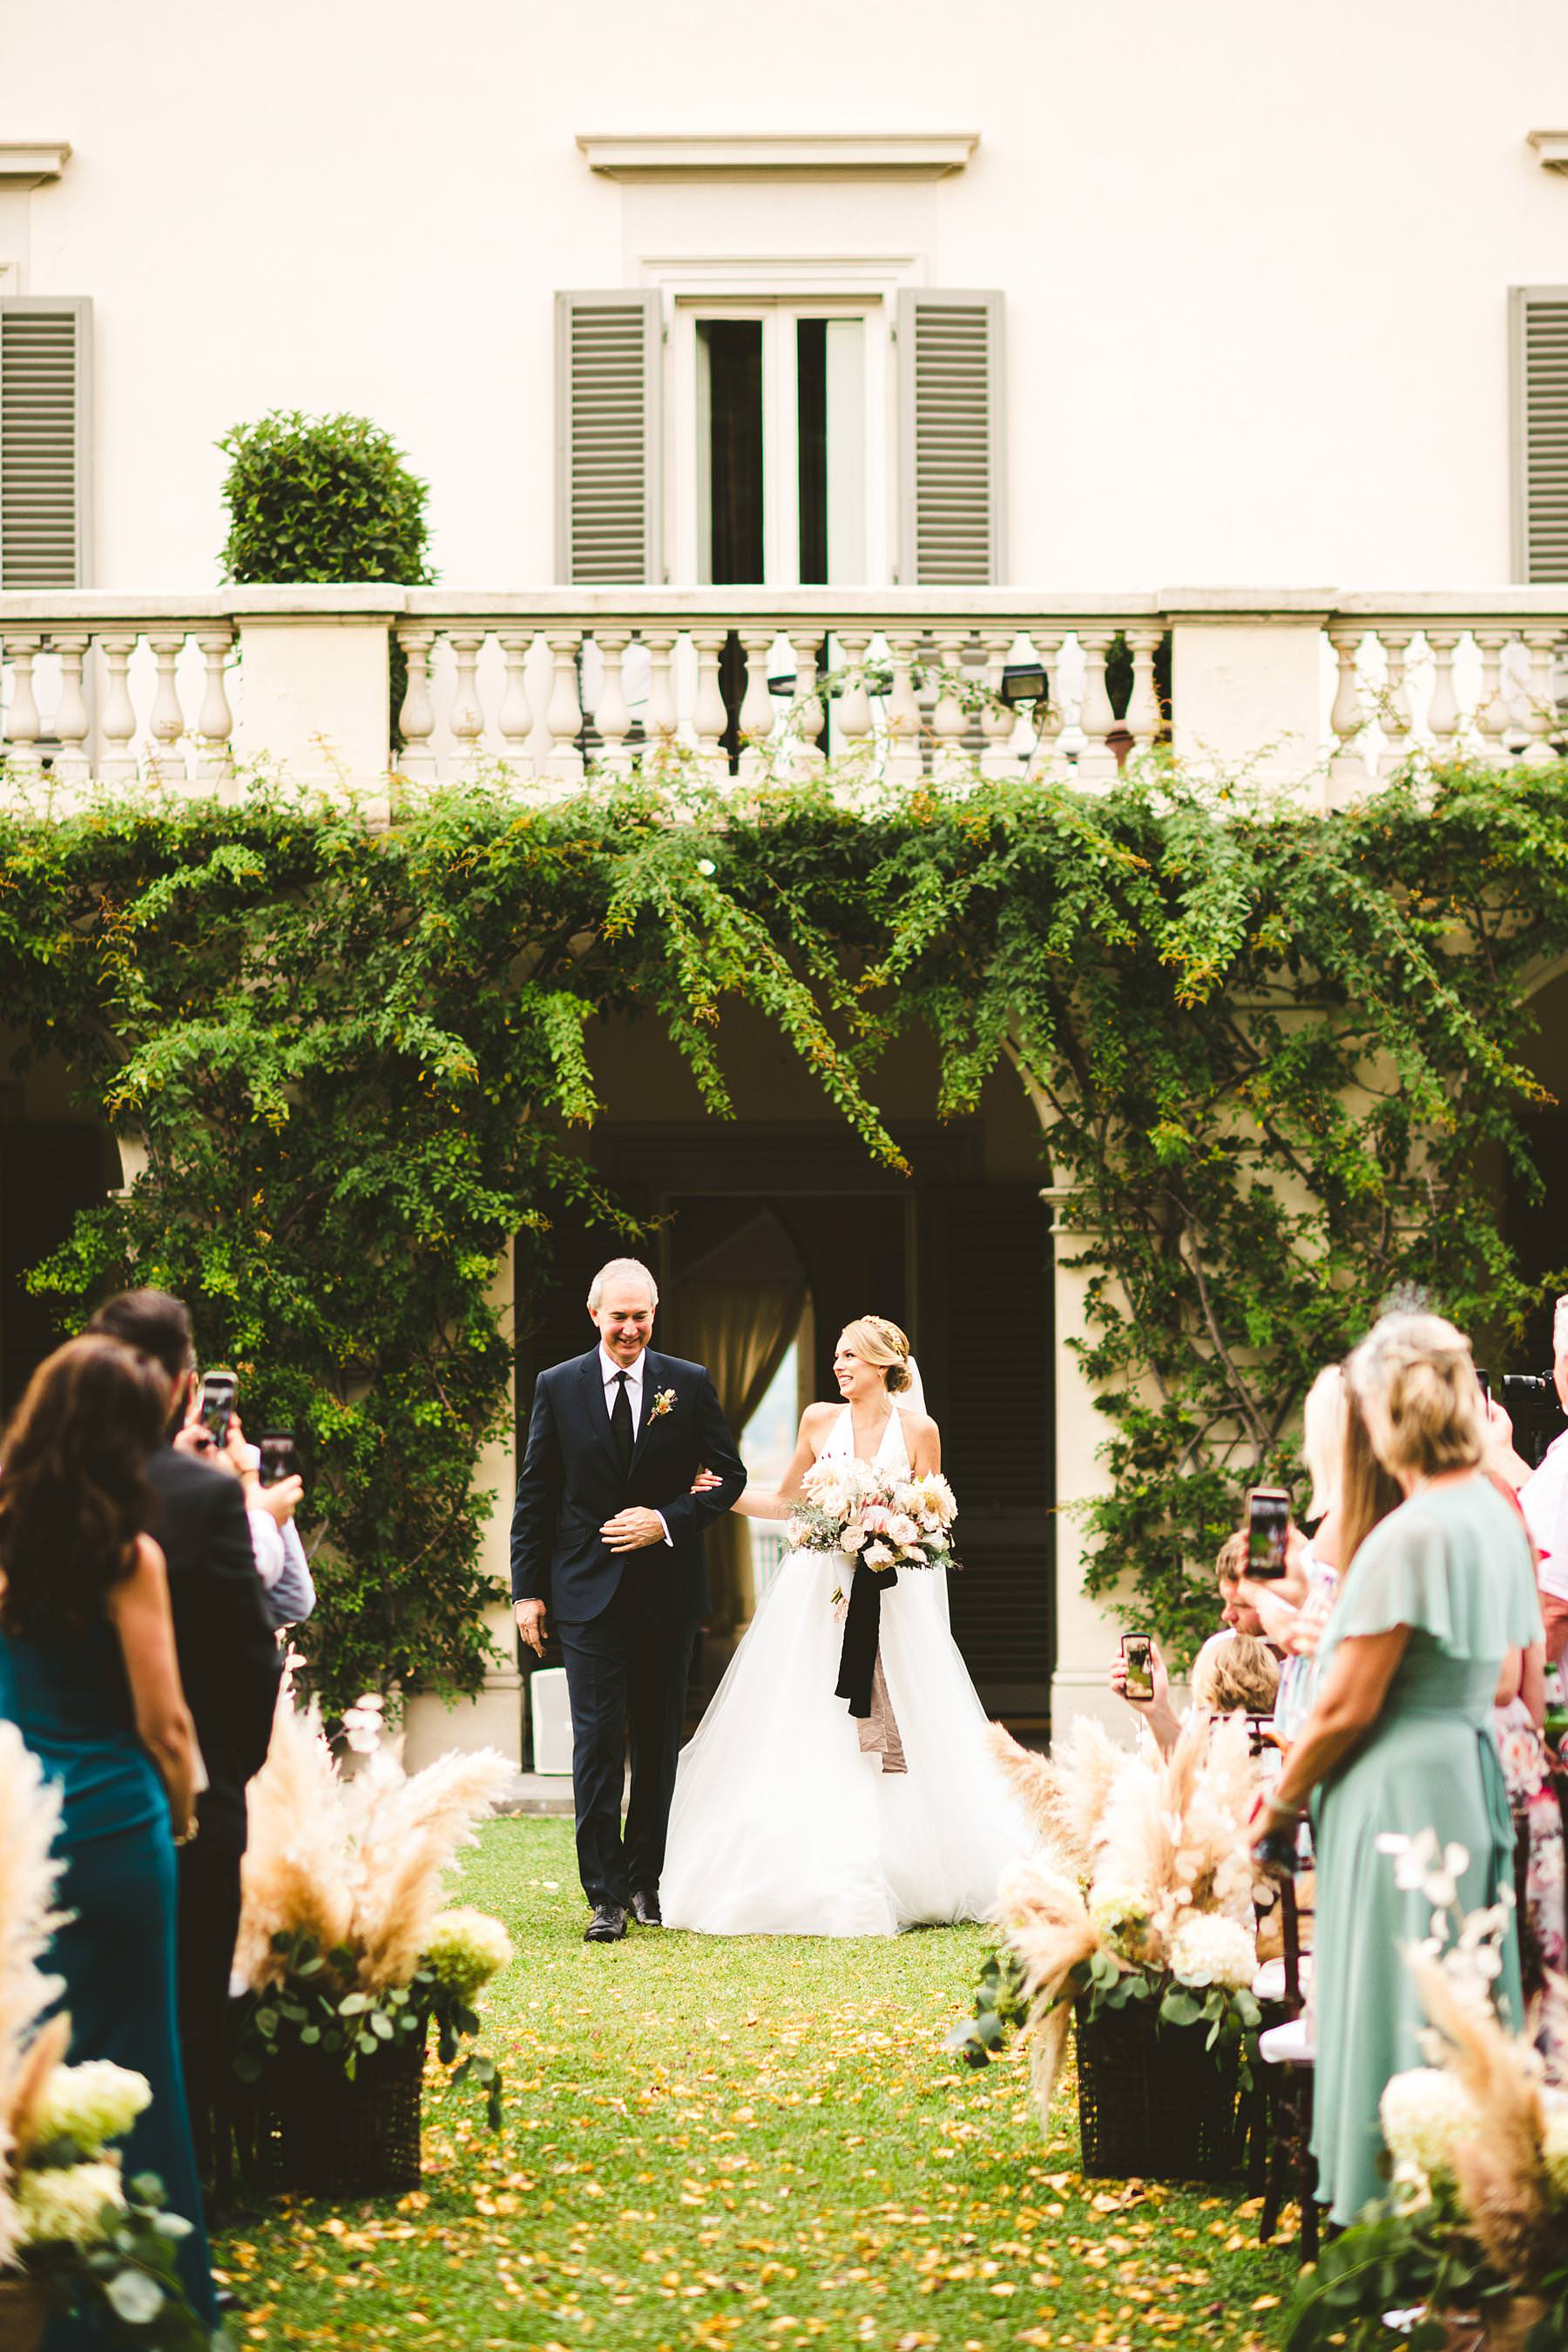 Bride Christina just walks down the aisle in the elegant garden and ceremony decor at Villa La Vedetta, Florence. Luxury destination wedding in Florence